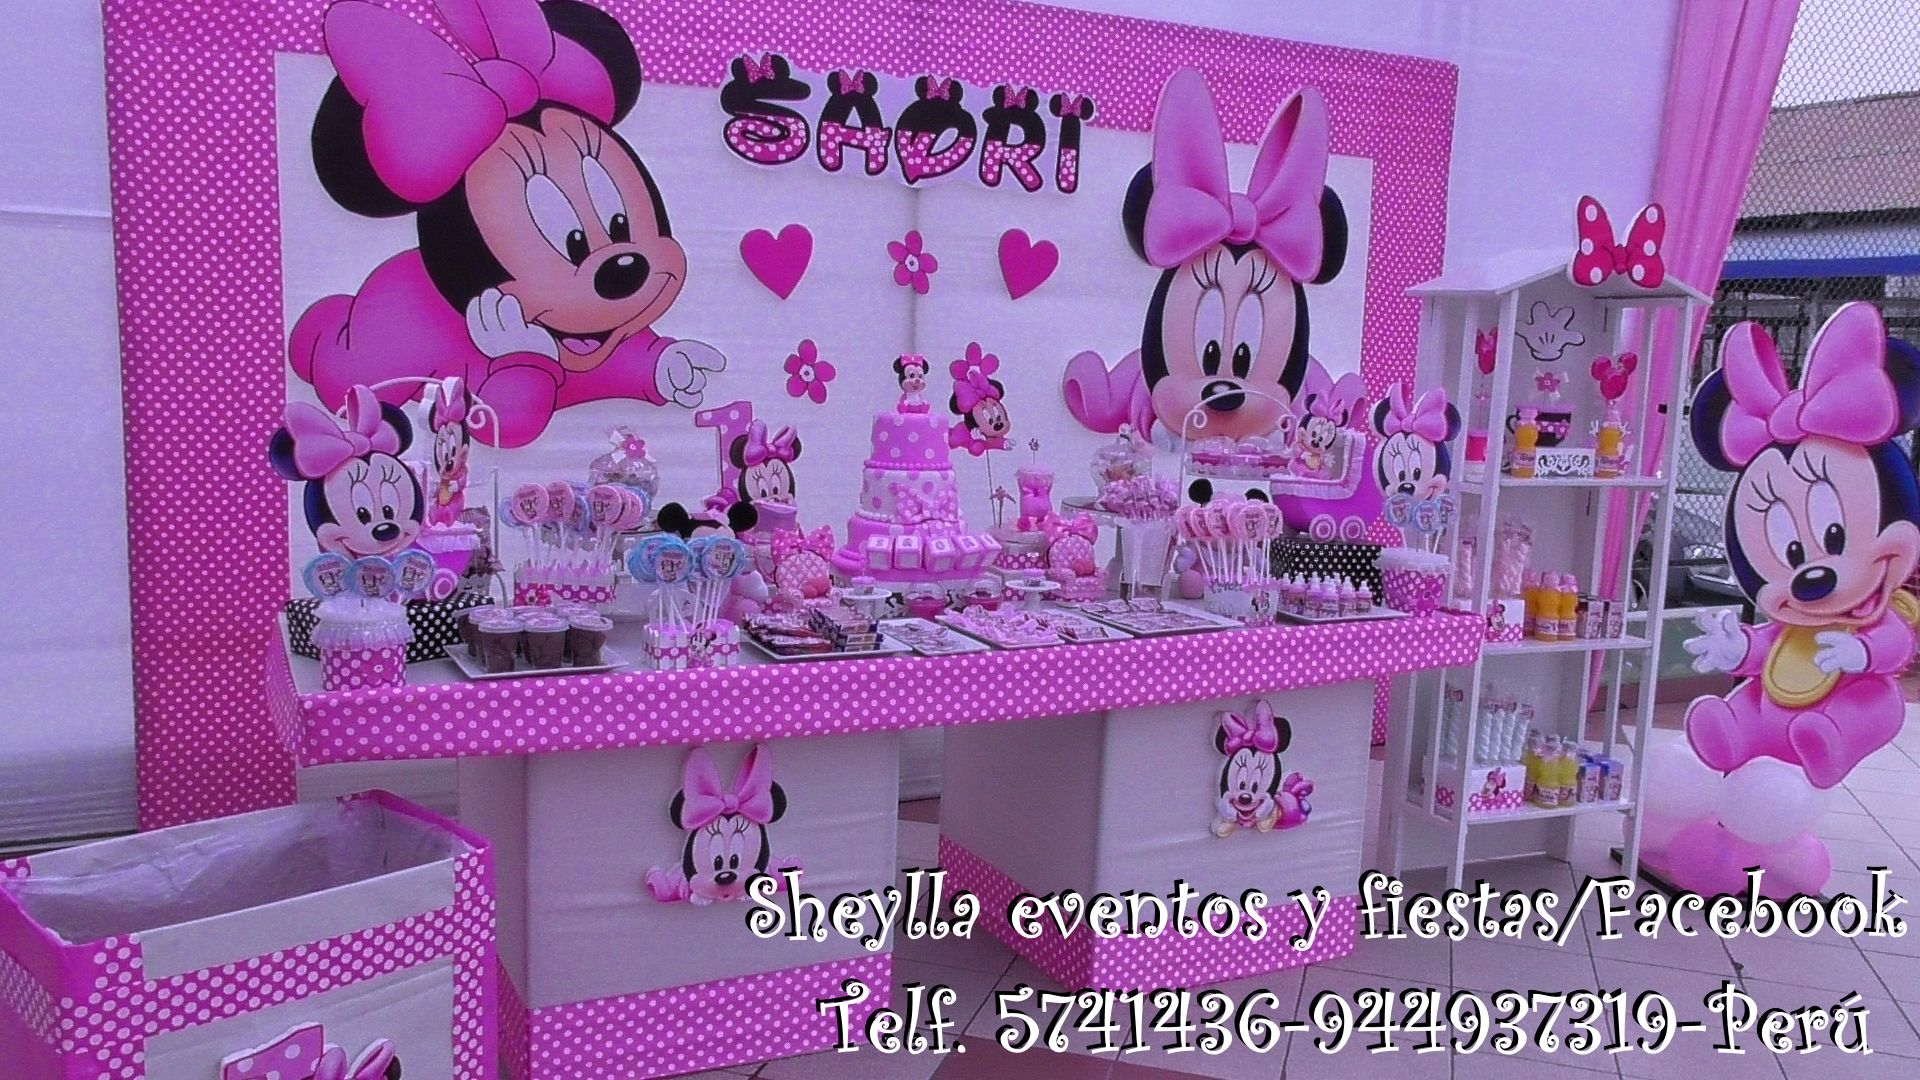 Decoraci n minnie bebe minnie mouse pinterest - Decoracion cumpleanos bebe ...